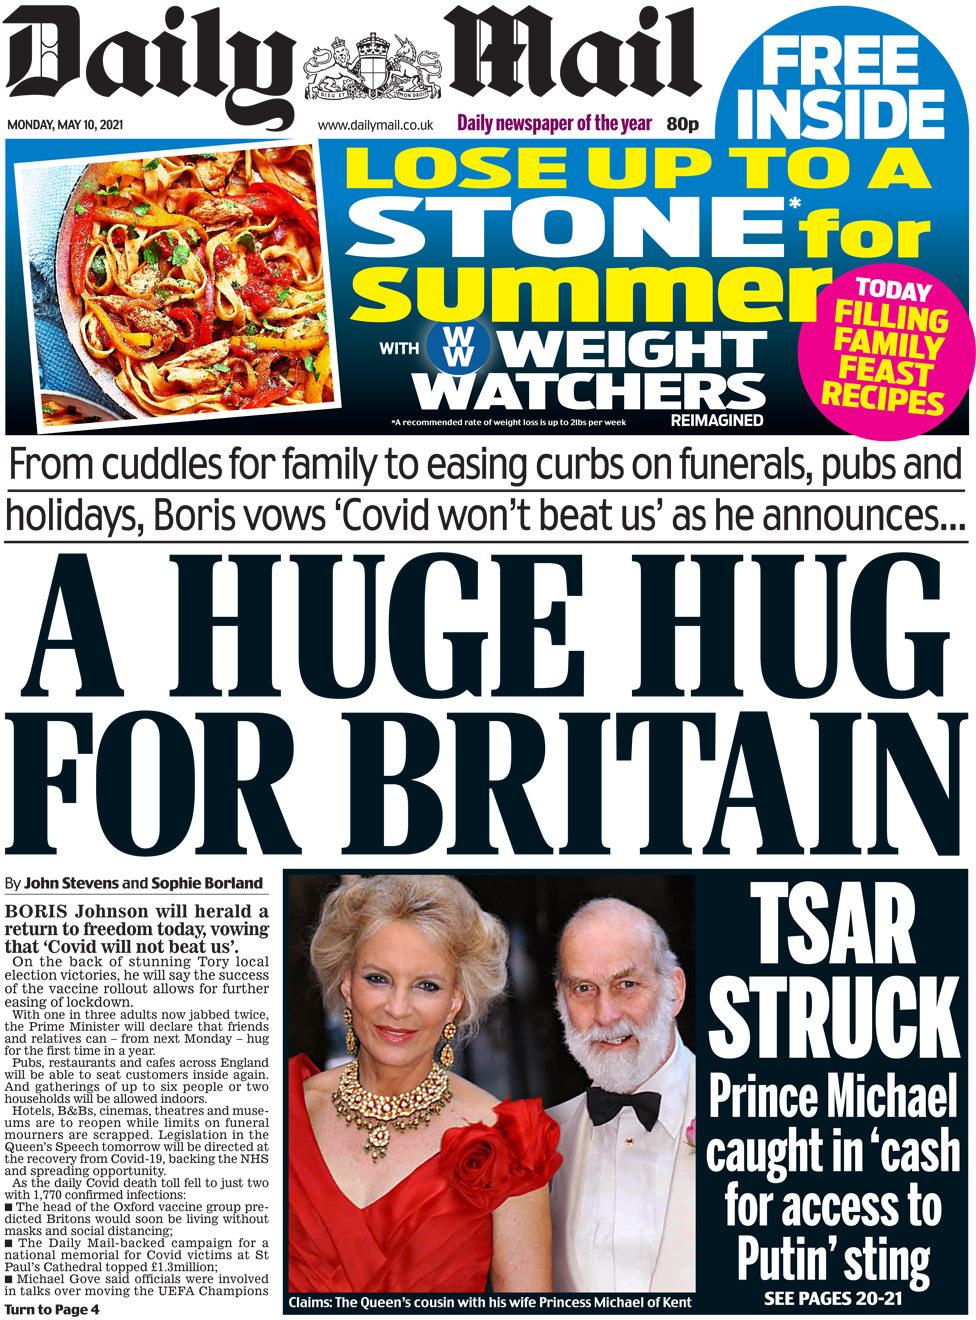 The Daily Mail front page 10 May 2021